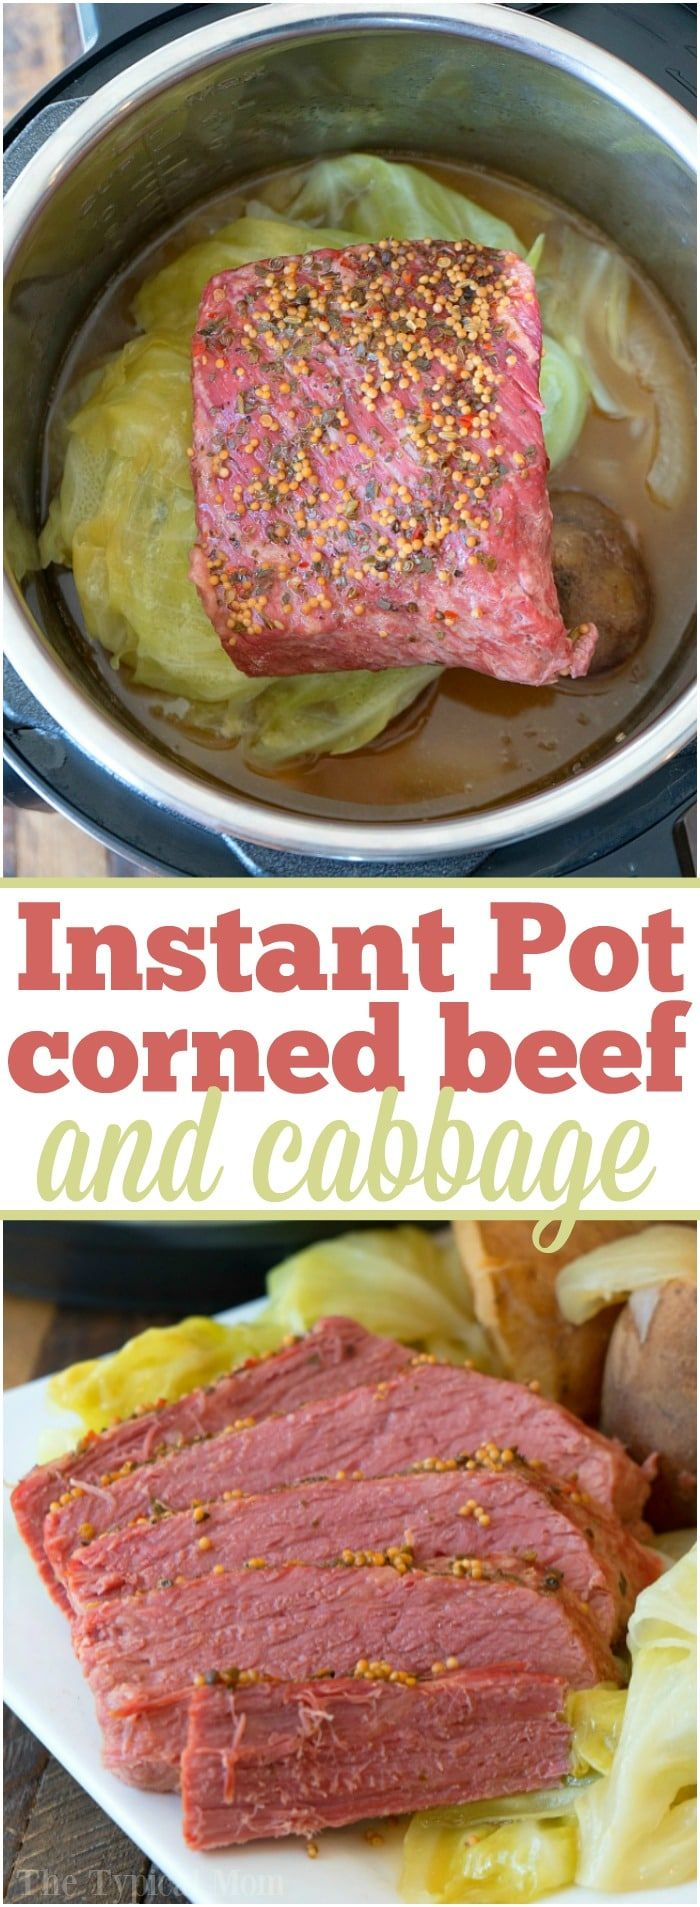 This easy Instant Pot corned beef and cabbage recipe is perfect for St. Patrick's Day or any other day of the year! Moist and flavorful corned beef brisket cooked in your pressure cooker is simple to do with a potato trick I use quite often. If you haven't tried this dinner idea you're in for a treat. #instantpot #pressurecooker #cornedbeef #brisket #cabbage #recipe #easy  via @thetypicalmom